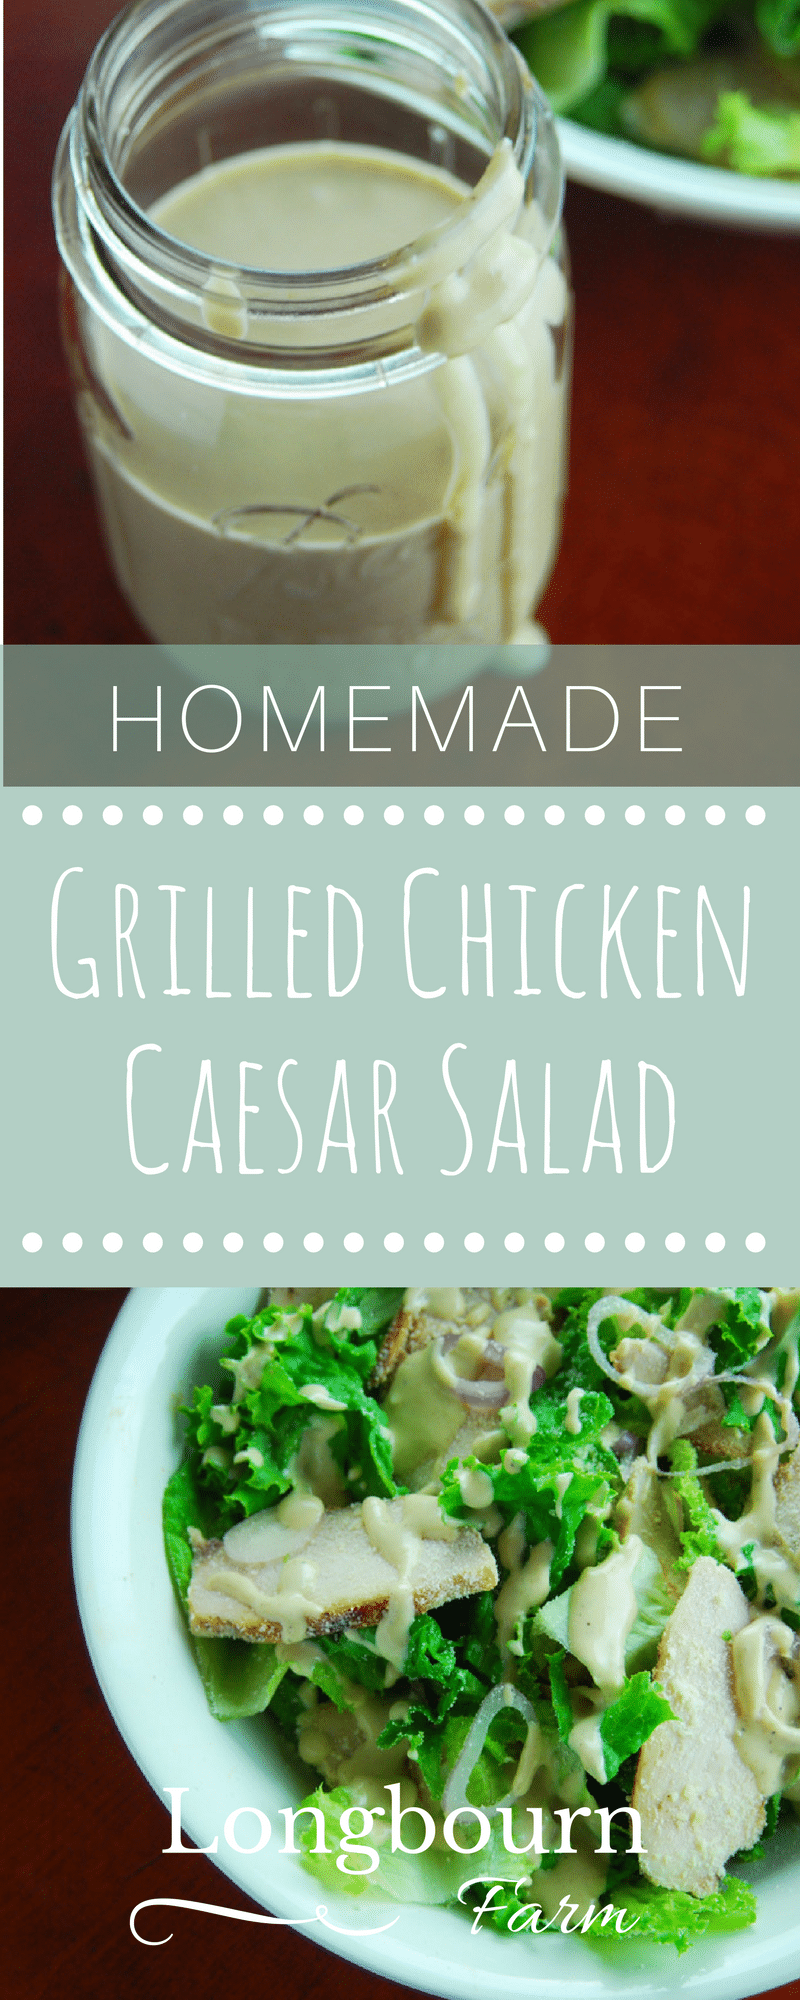 Grilled chicken caesar salad is the perfect light lunch or dinner. Homemade caesar salad dressing is easy to make and so delicious. You can make it, try it! via @longbournfarm